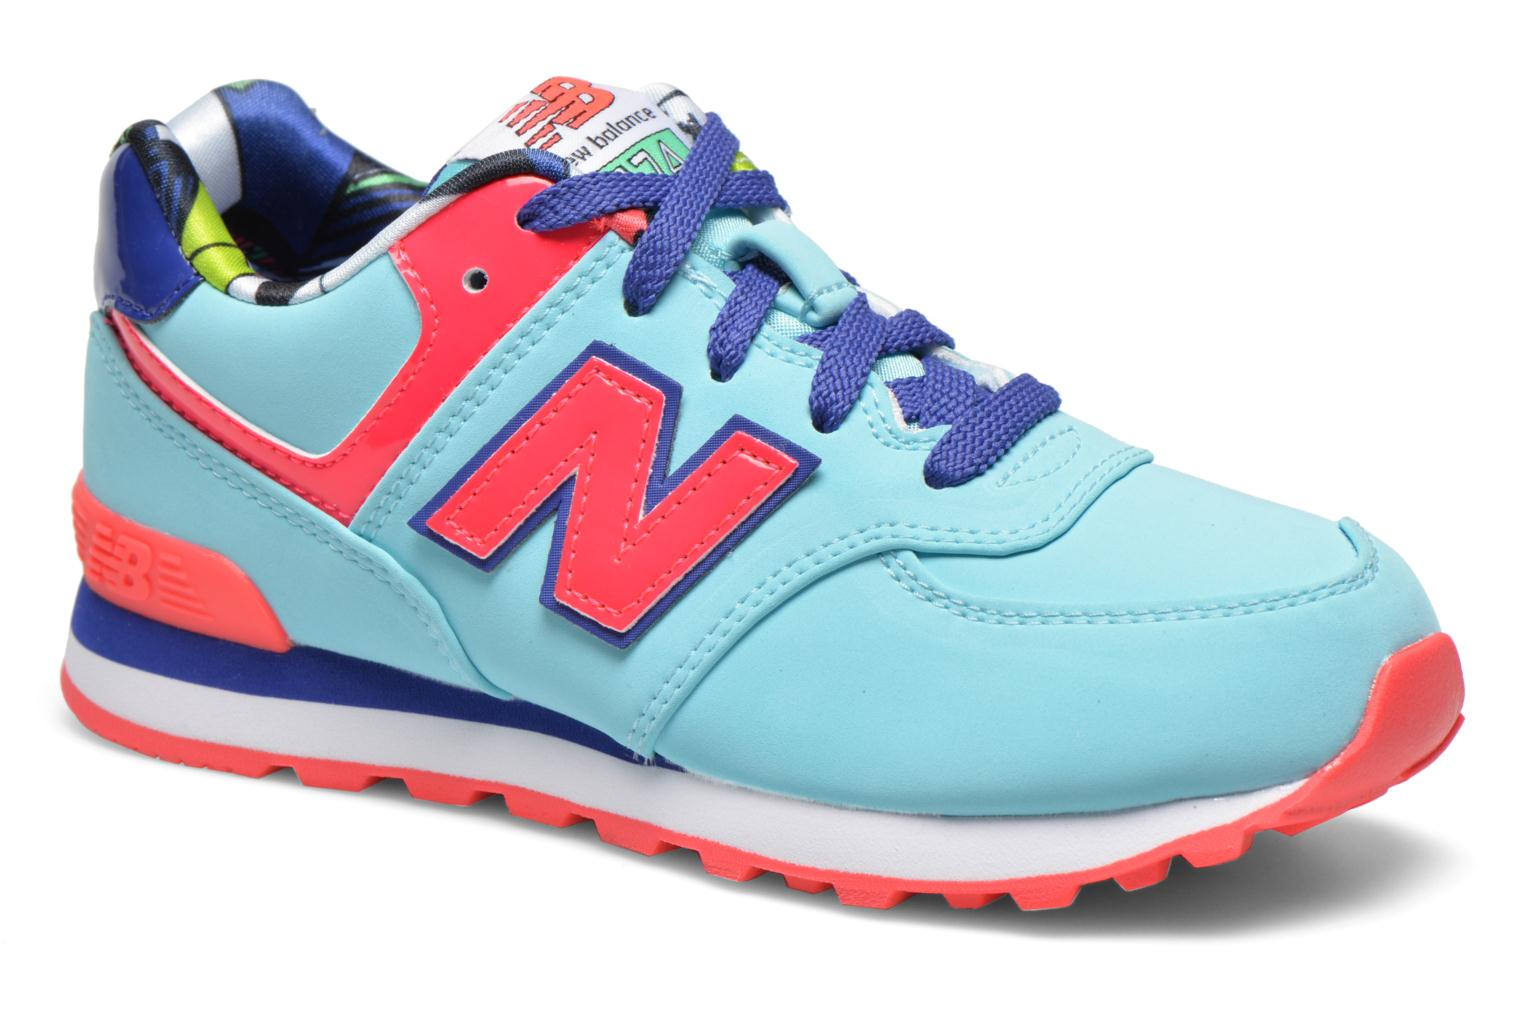 Sneakers KL574TXP by New Balance